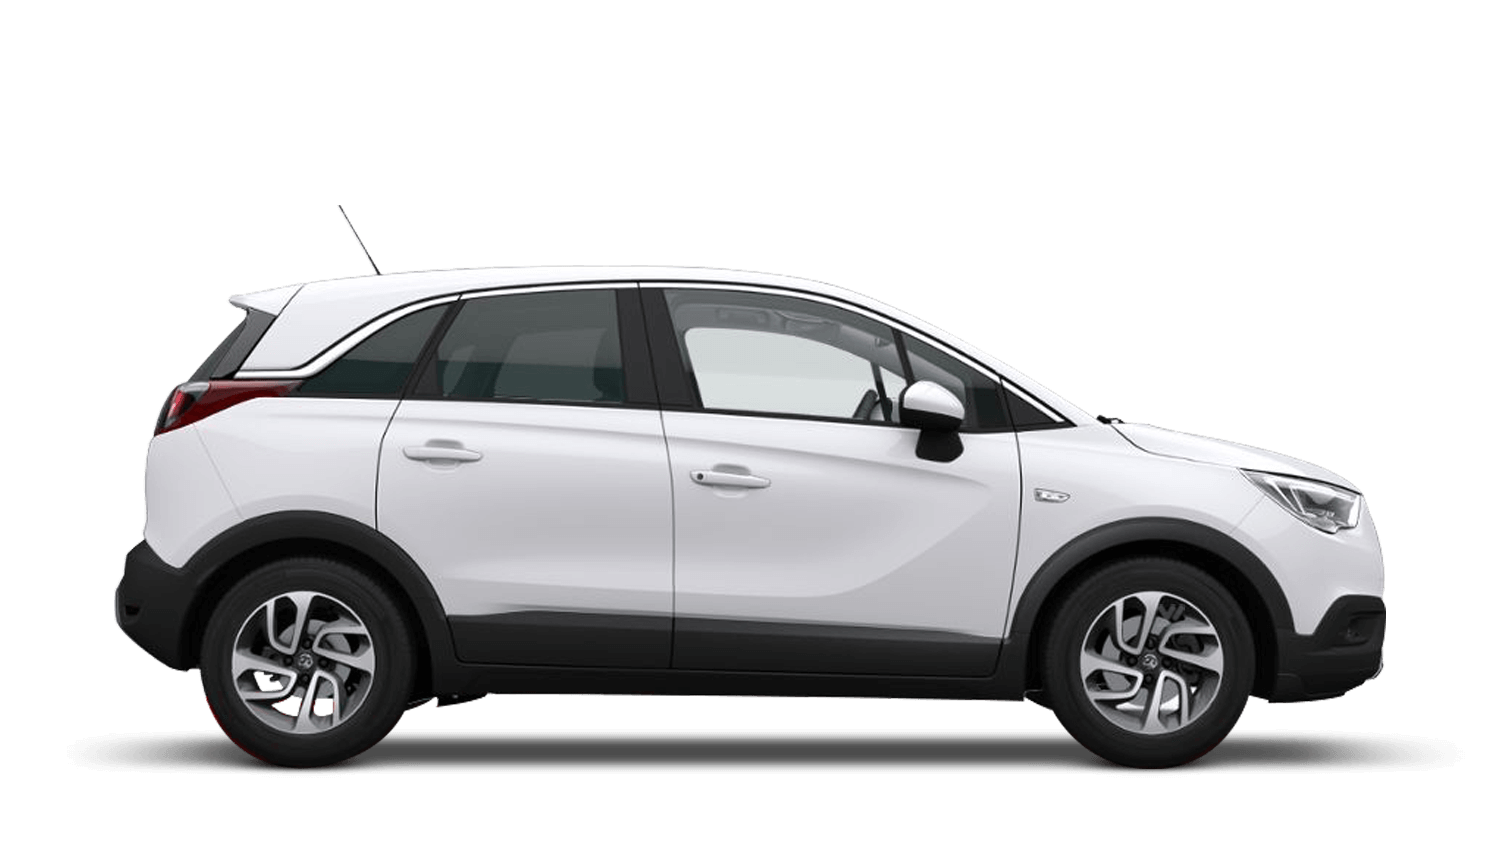 Summit White (Brilliant) Vauxhall Crossland X